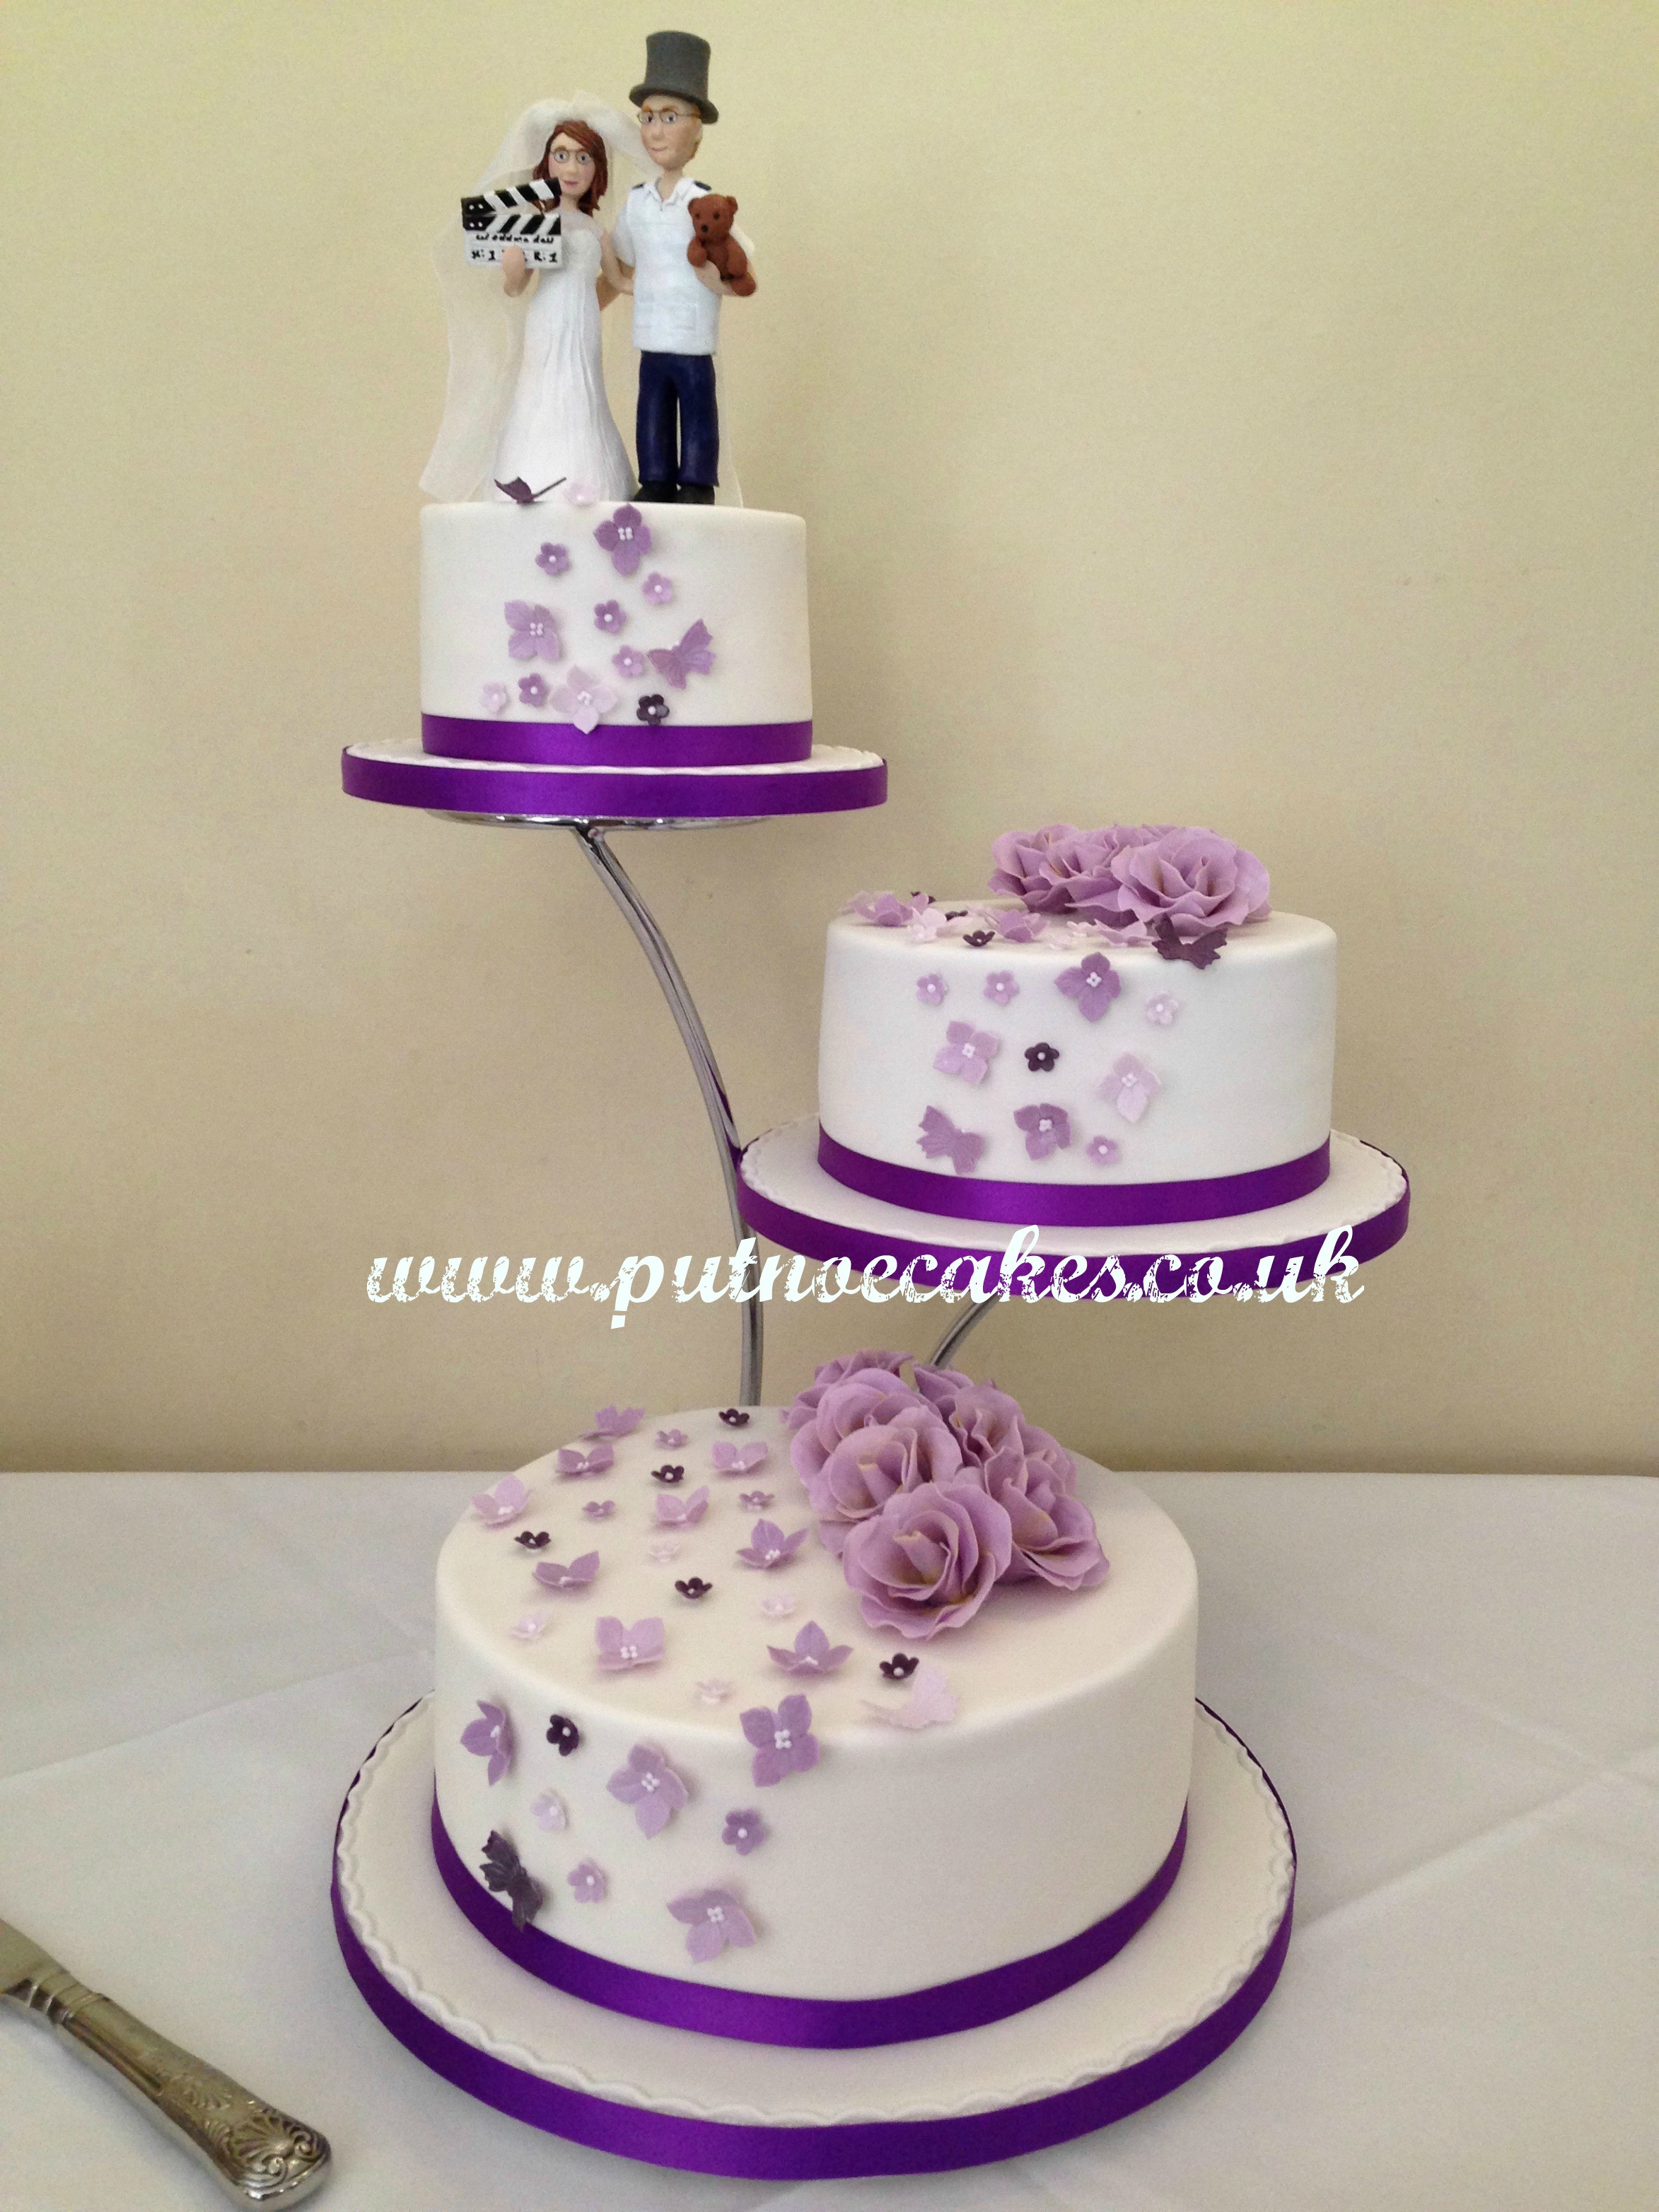 Separate Tier Wedding Cakes  Separate Tier Wedding Cakes